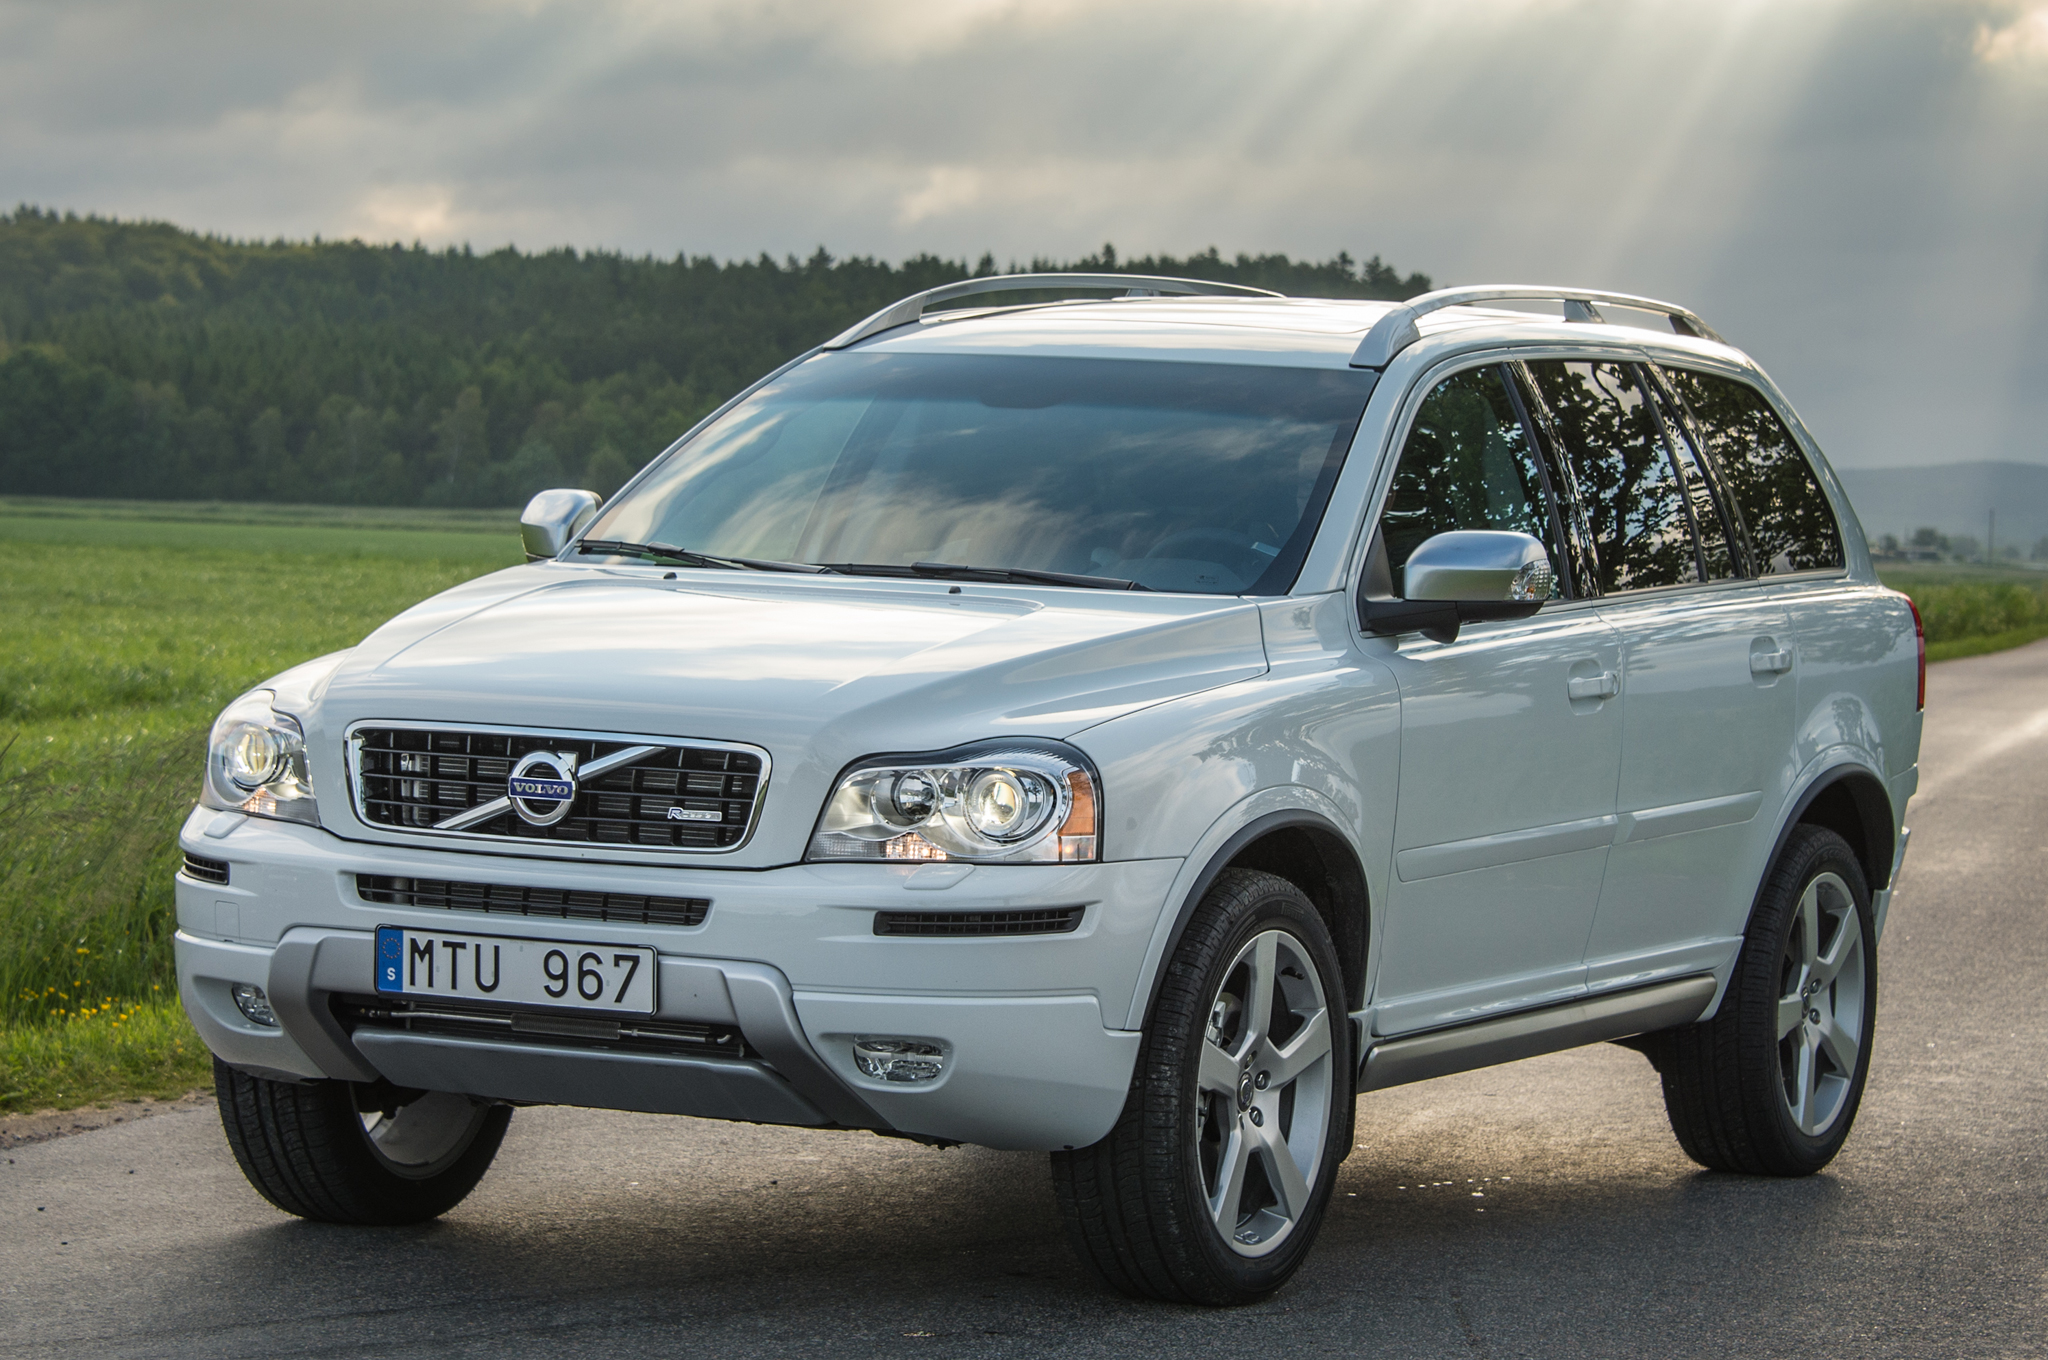 volvo xc90 ii 2 0 t5 254 hp awd automatic. Black Bedroom Furniture Sets. Home Design Ideas